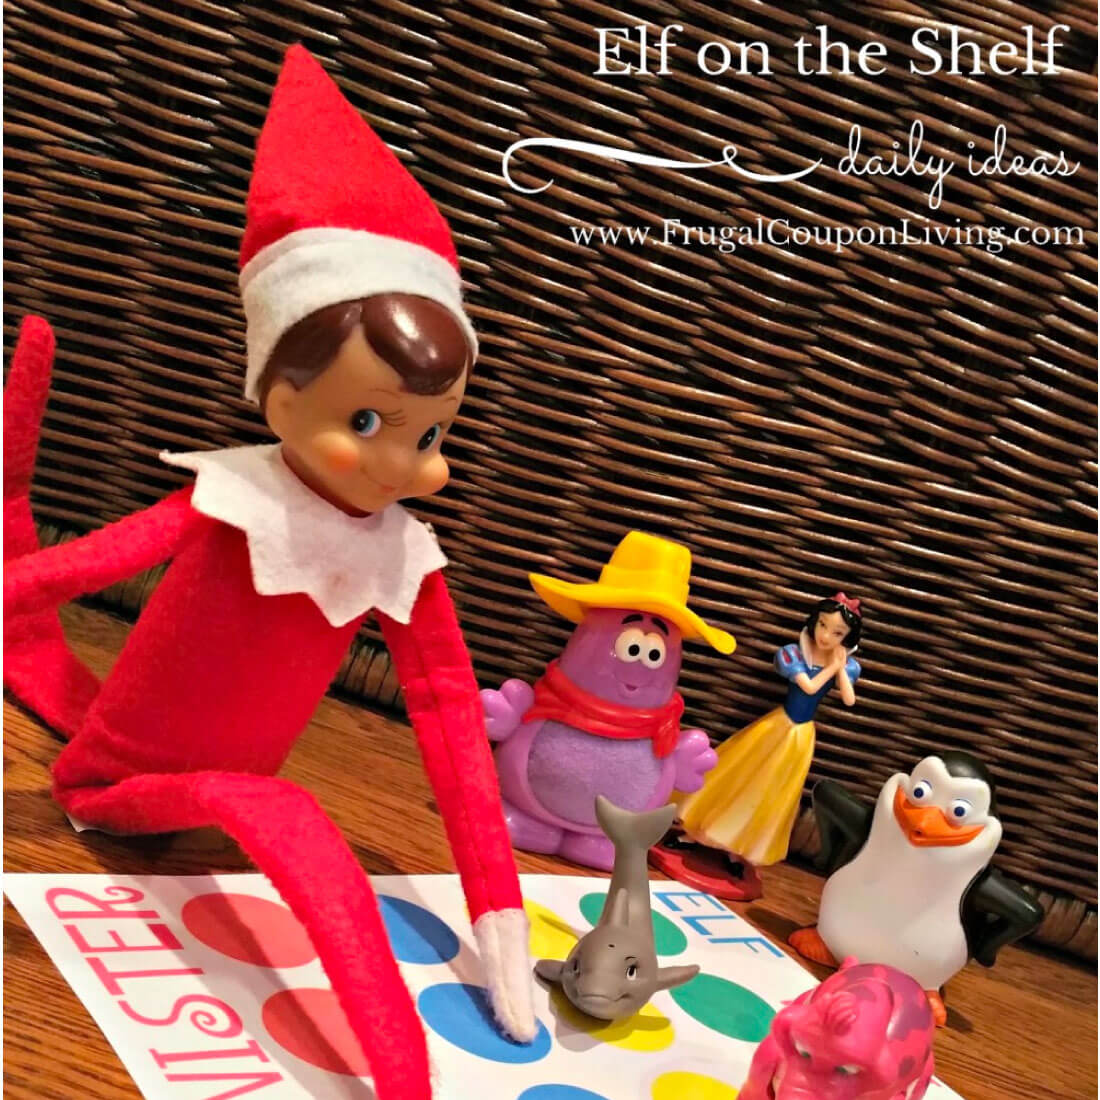 Elf on the Shelf Twister